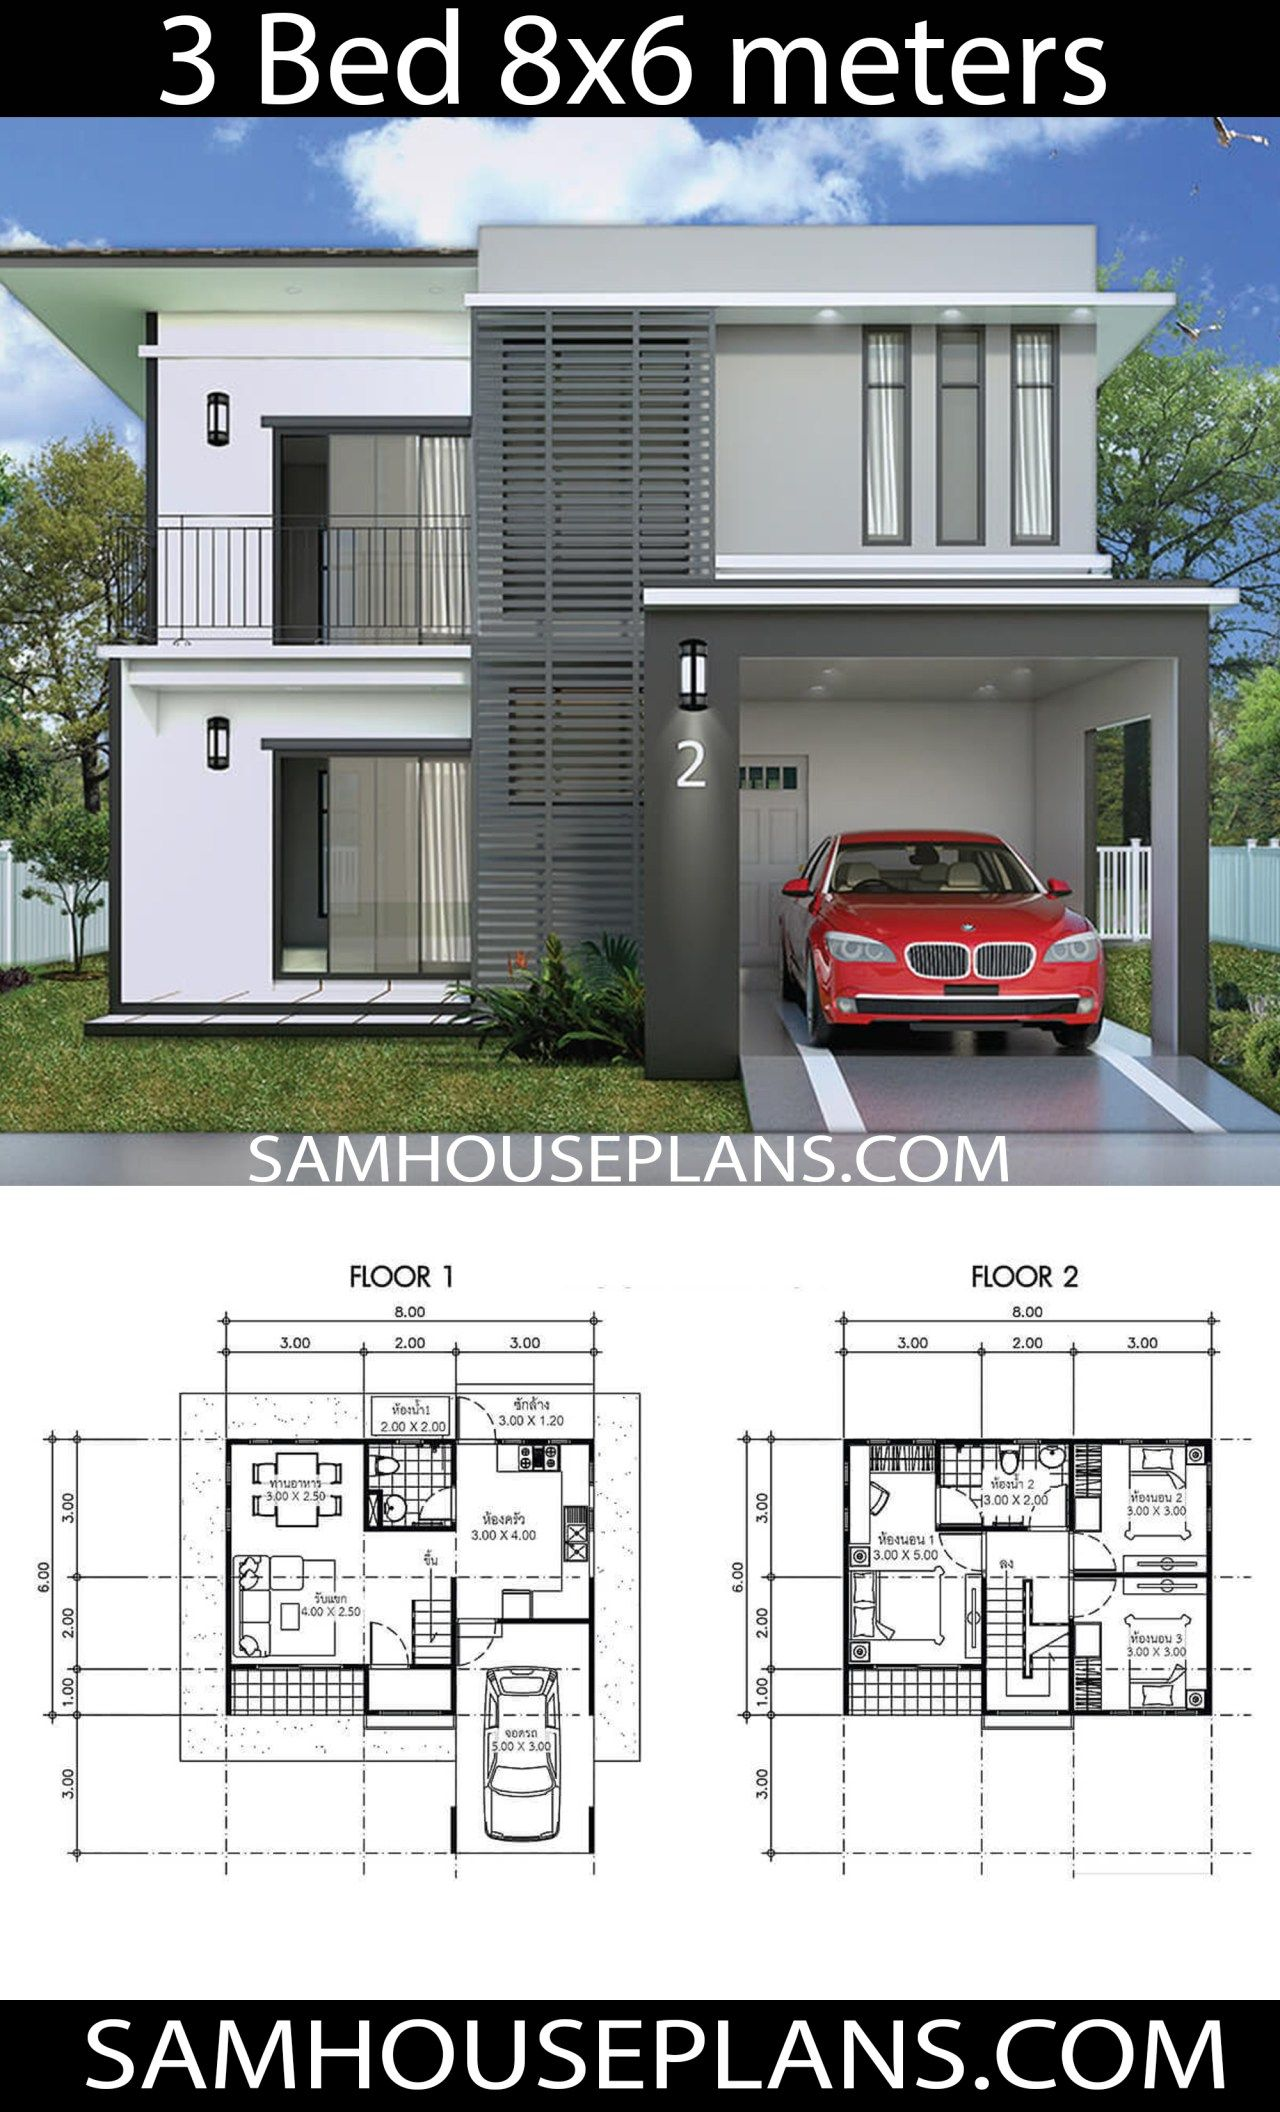 House Plans Idea 8x6 With 3 Bedrooms Sam House Plans Duplex House Design Small House Design Plans Small House Design